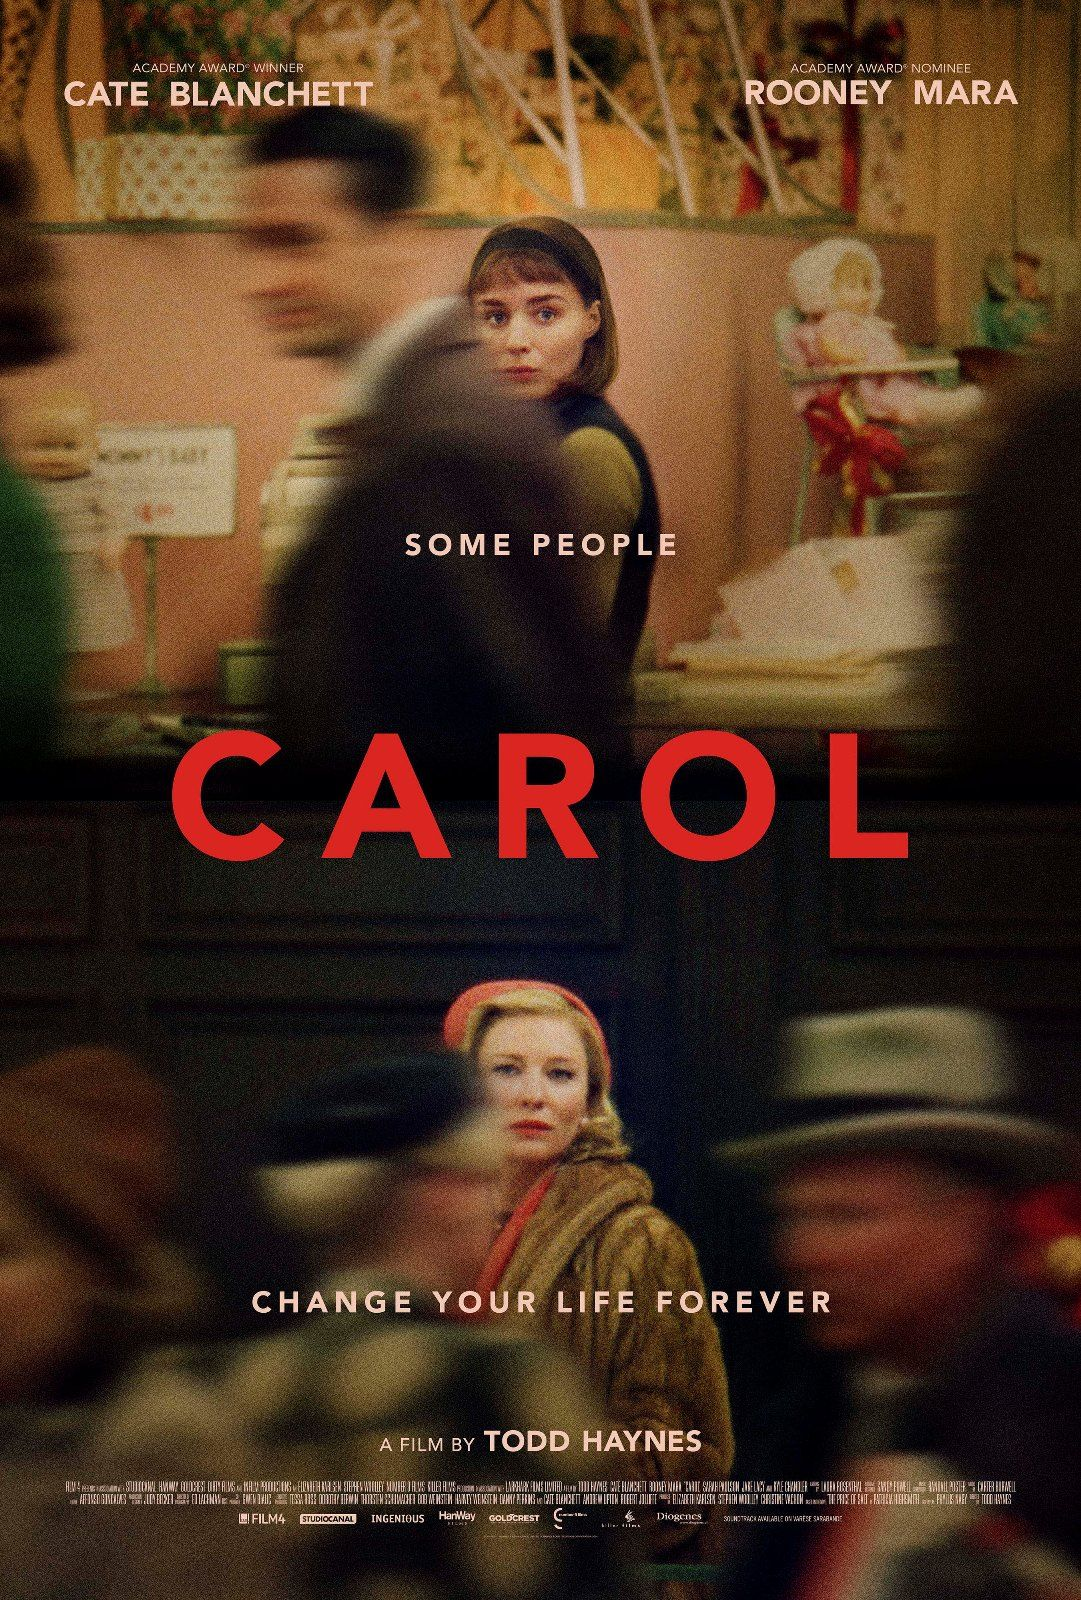 Pin by Kevin Liao on FILM Carole, About time movie